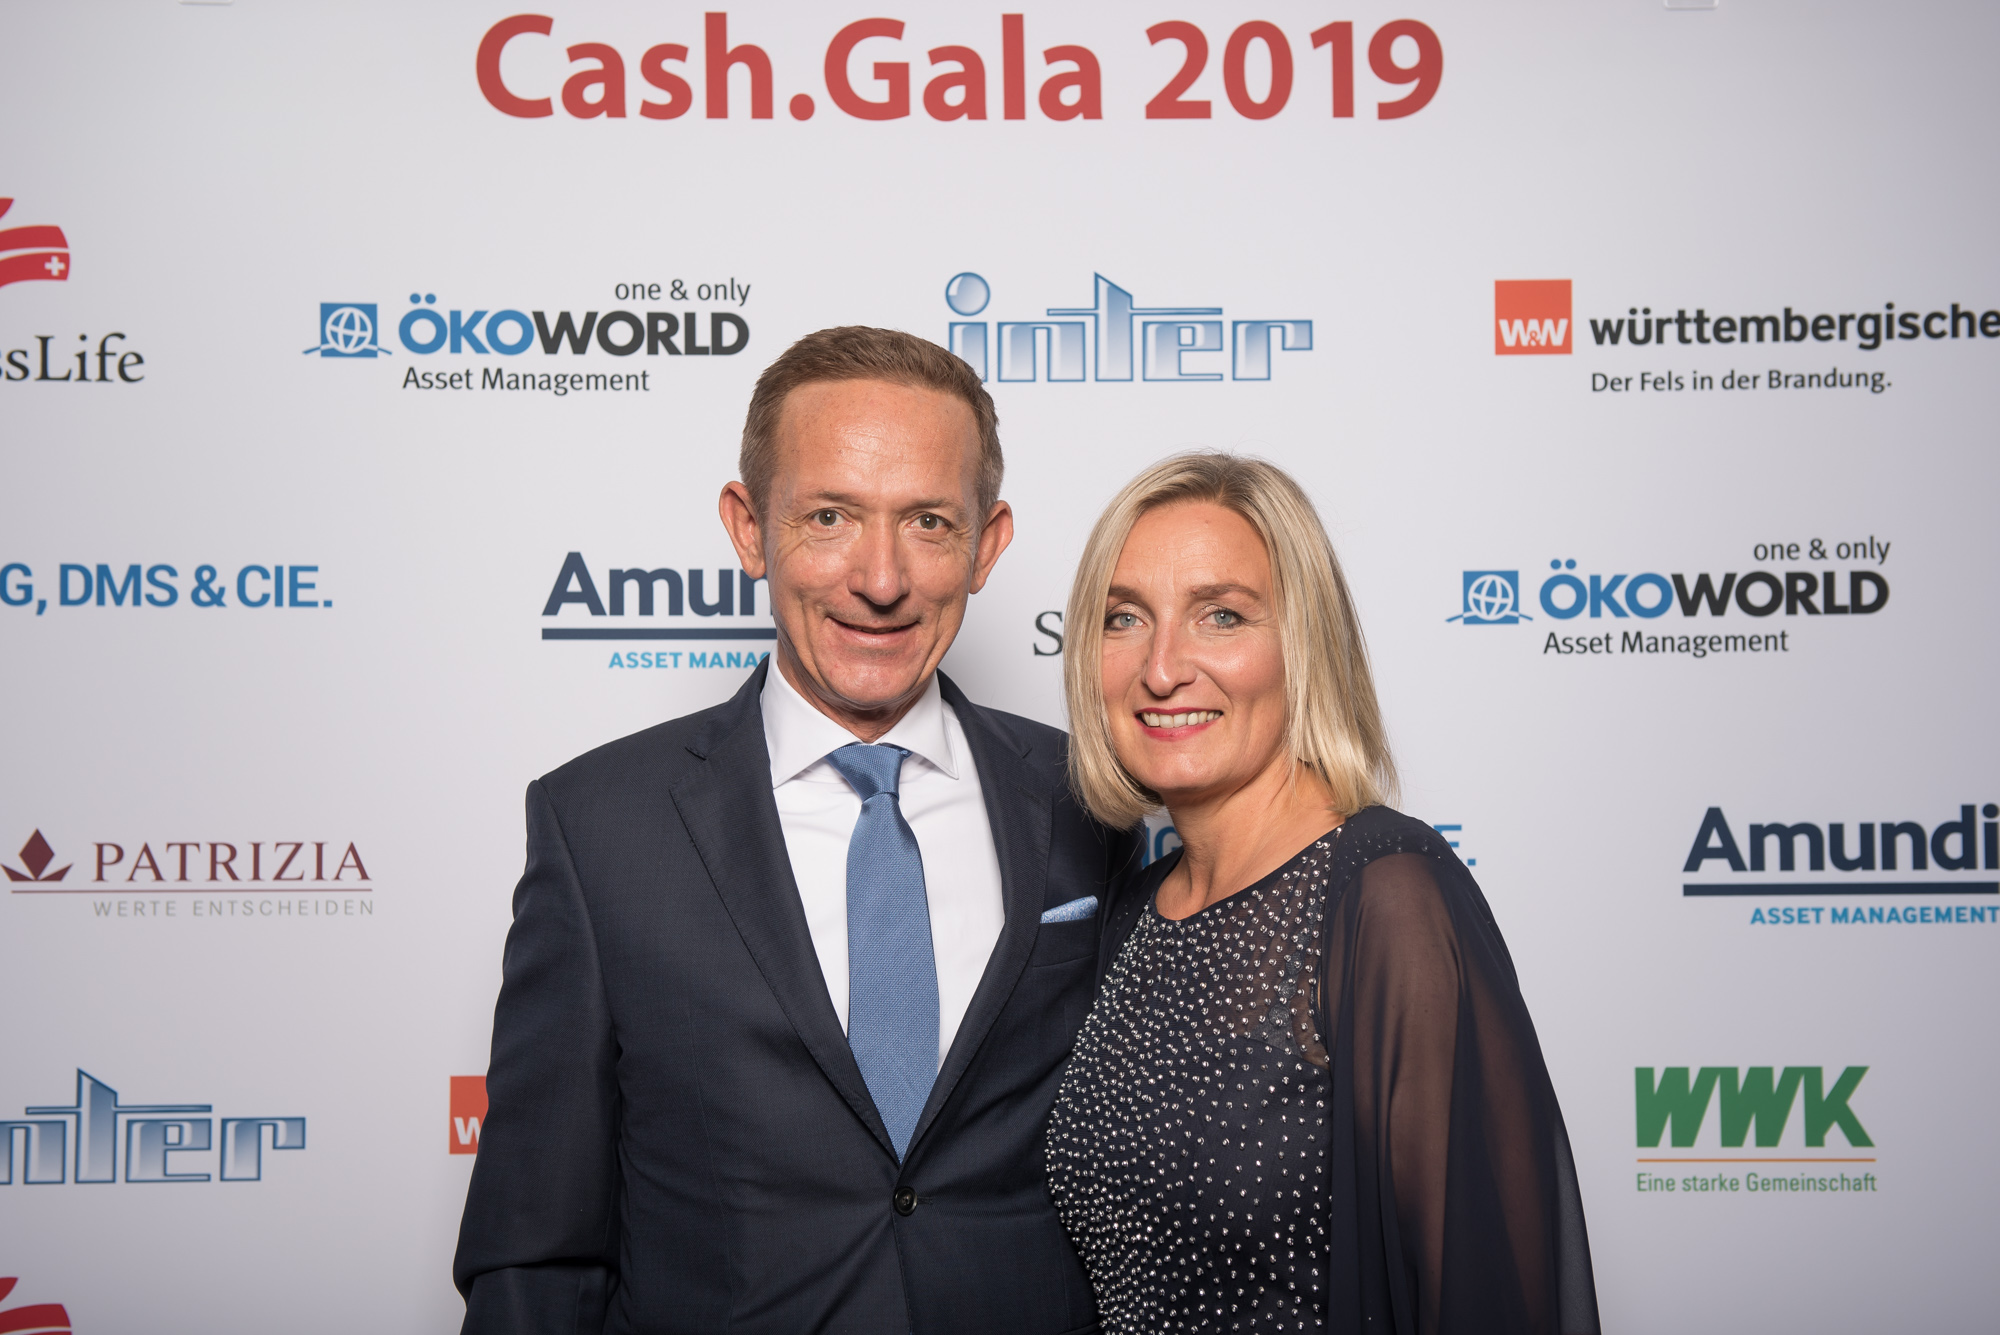 CashGala 2019 0009 AM DSC6950 in Cash.Gala 2019